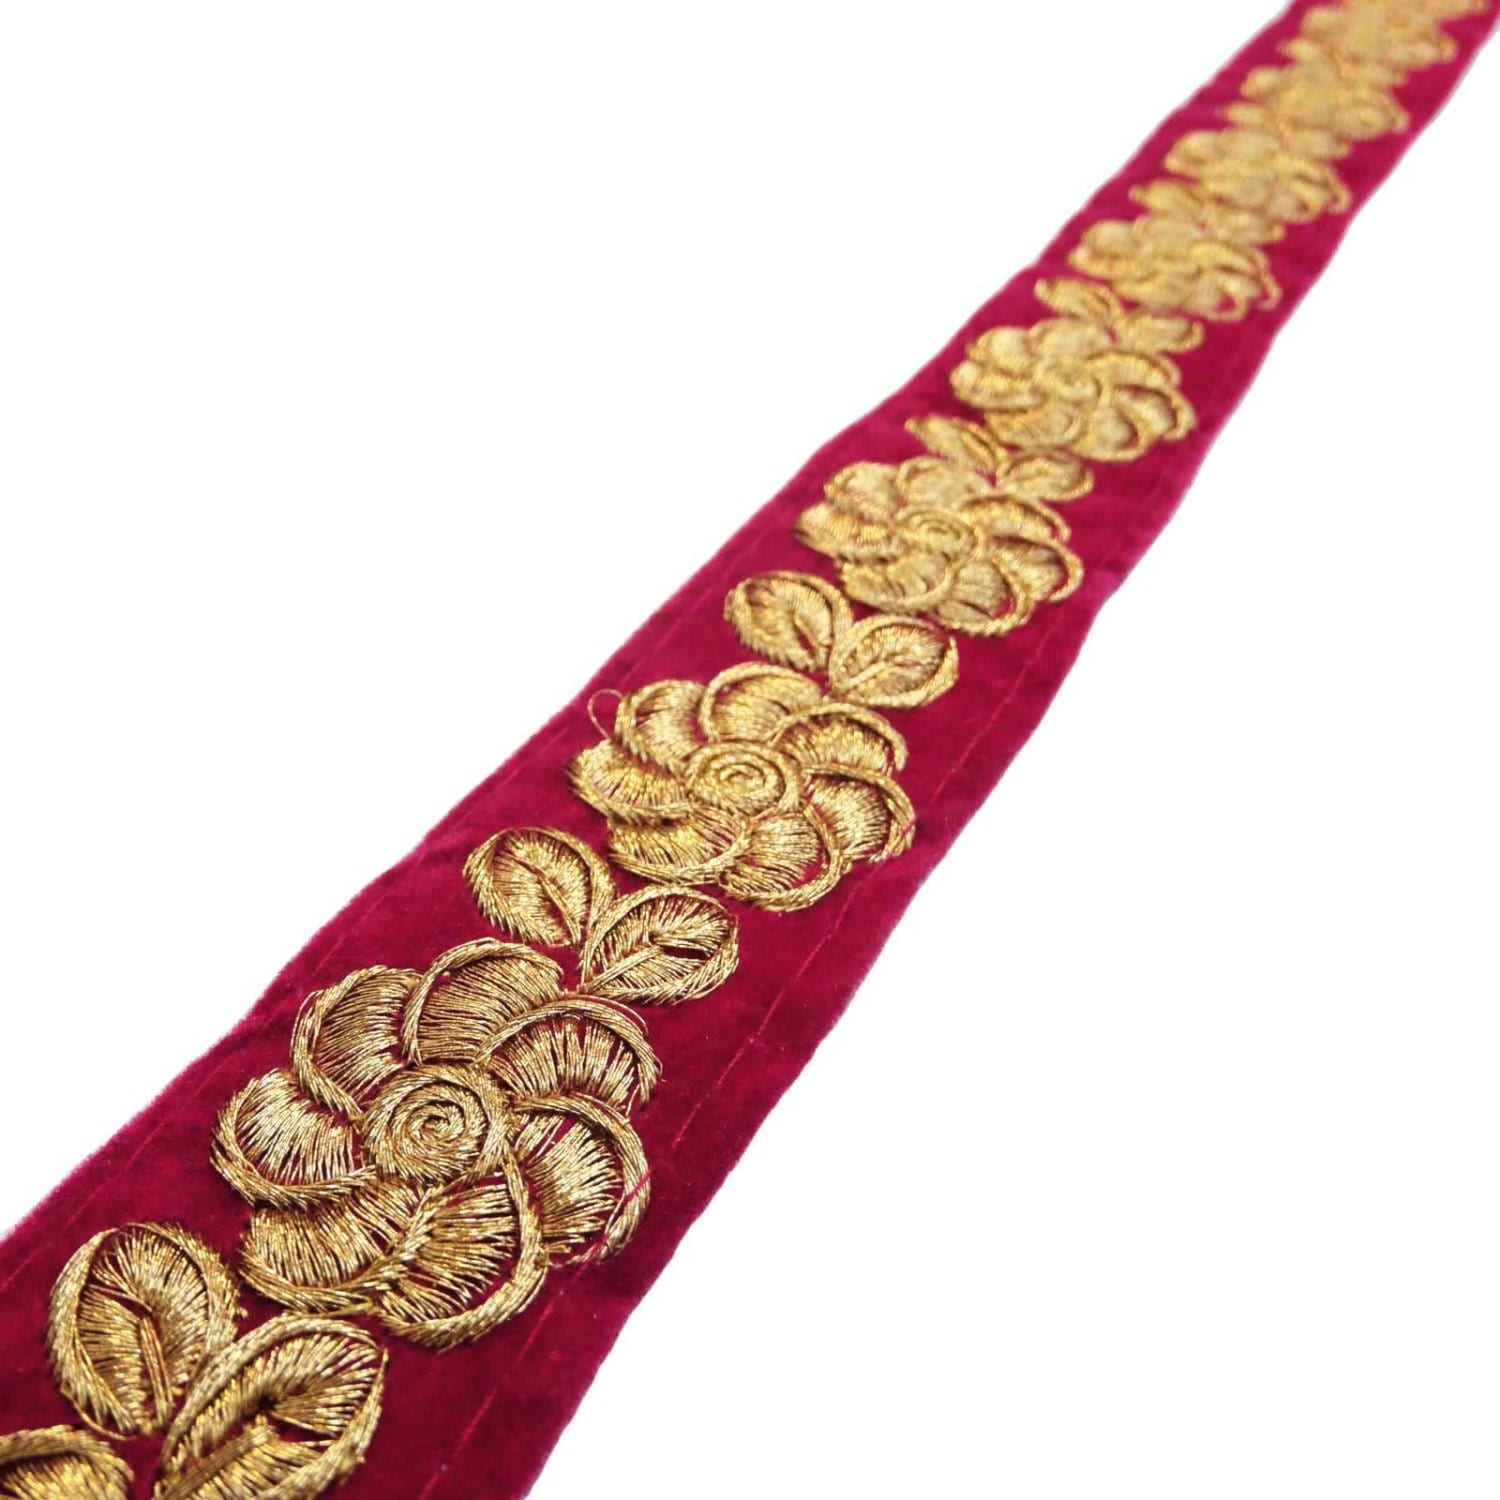 Magenta trim embroidered ribbon floral soft furnishings widht